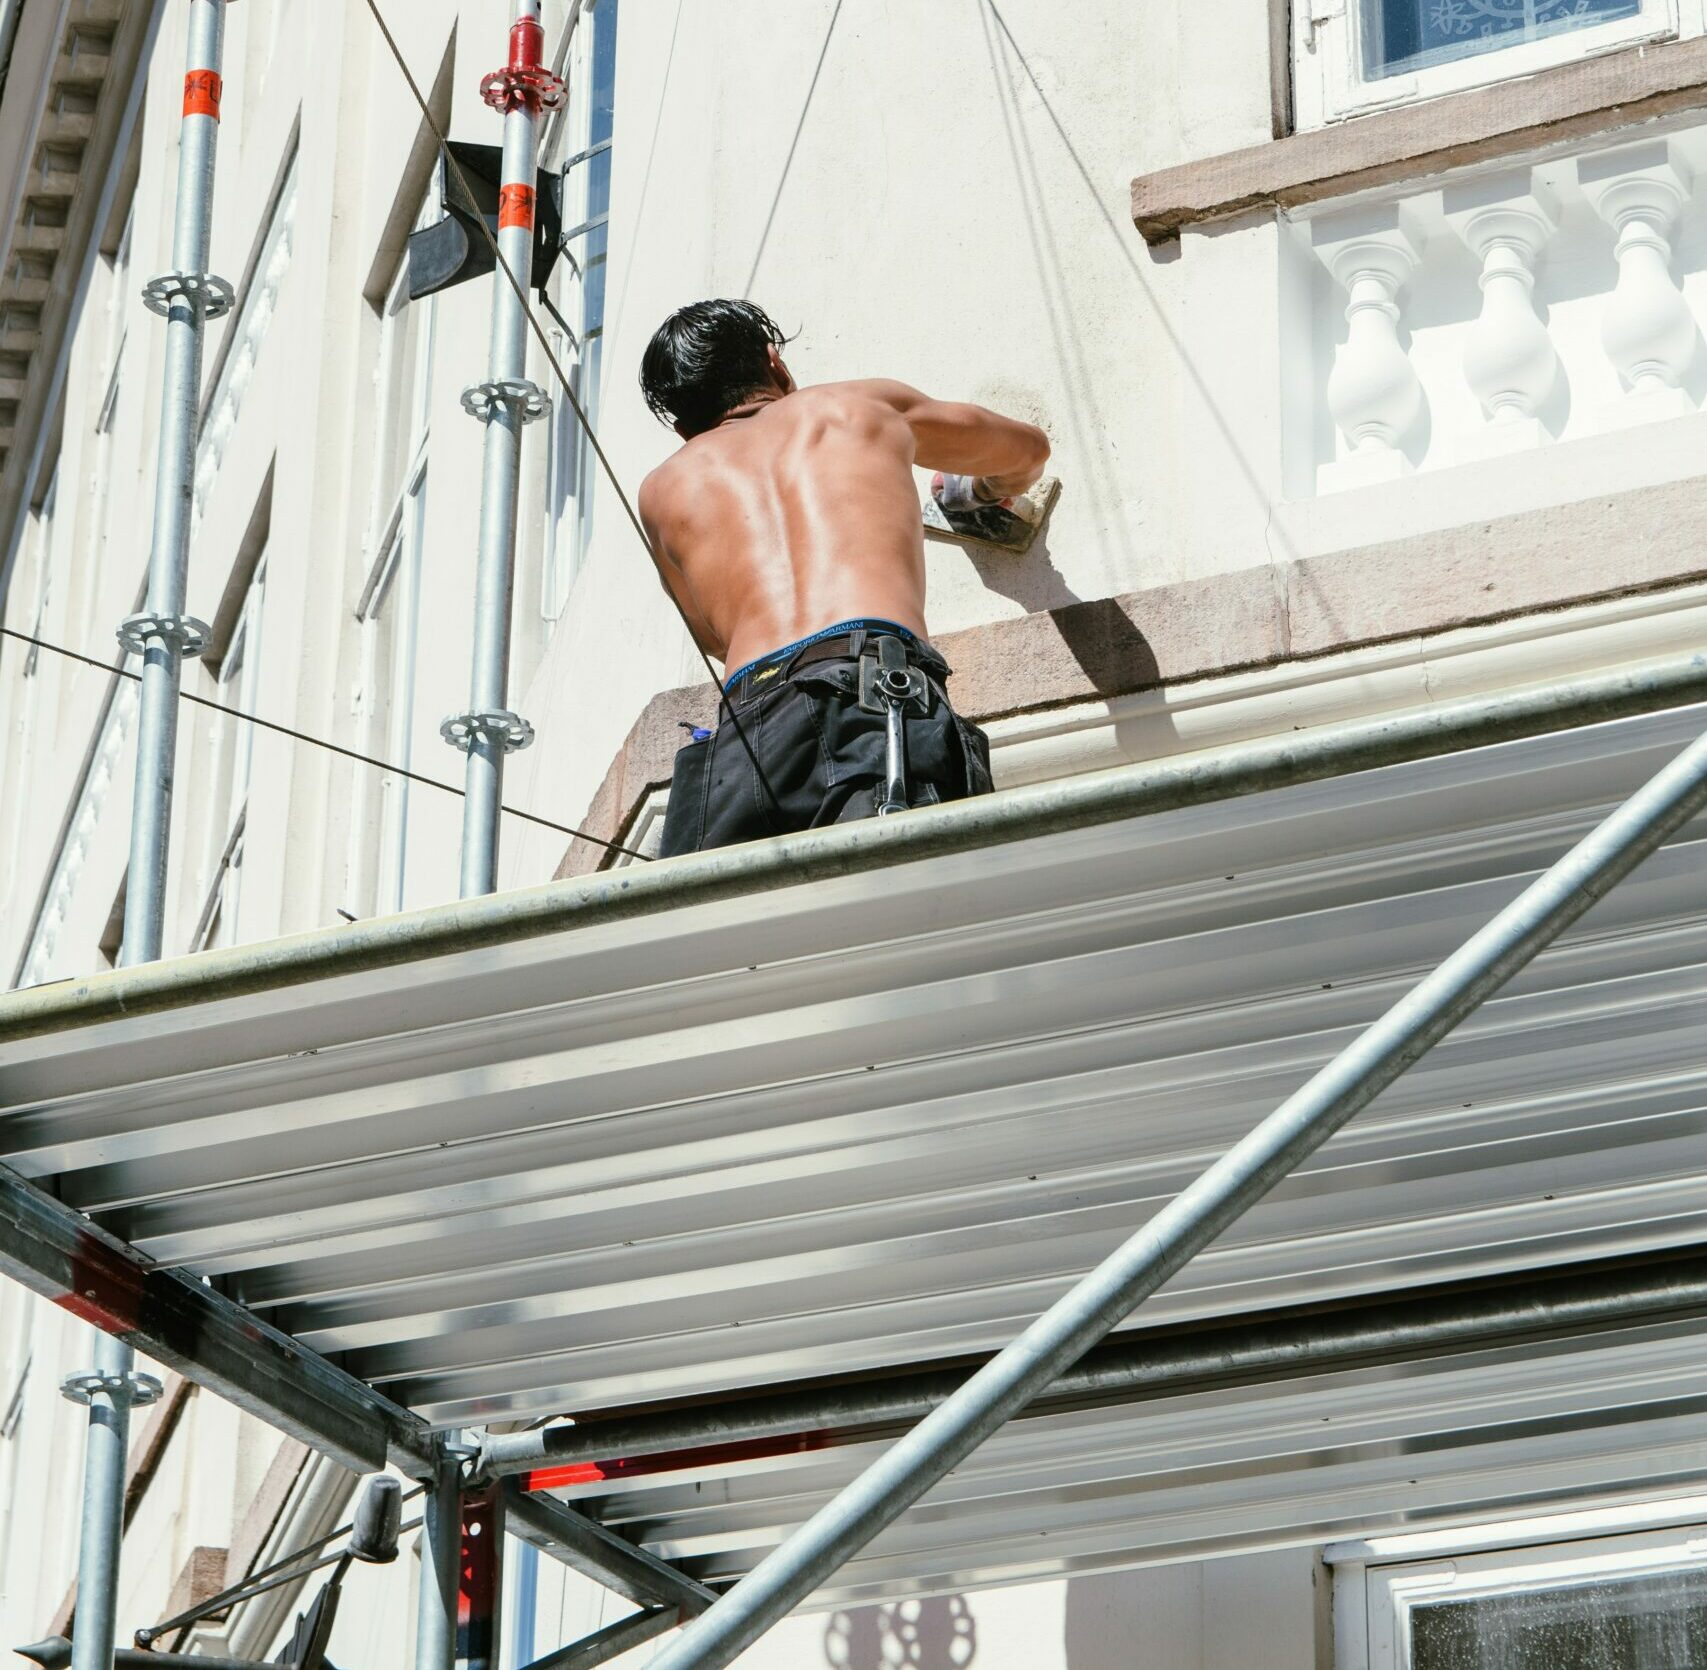 A shirtless man on scaffolding is working on the outside of a white house.